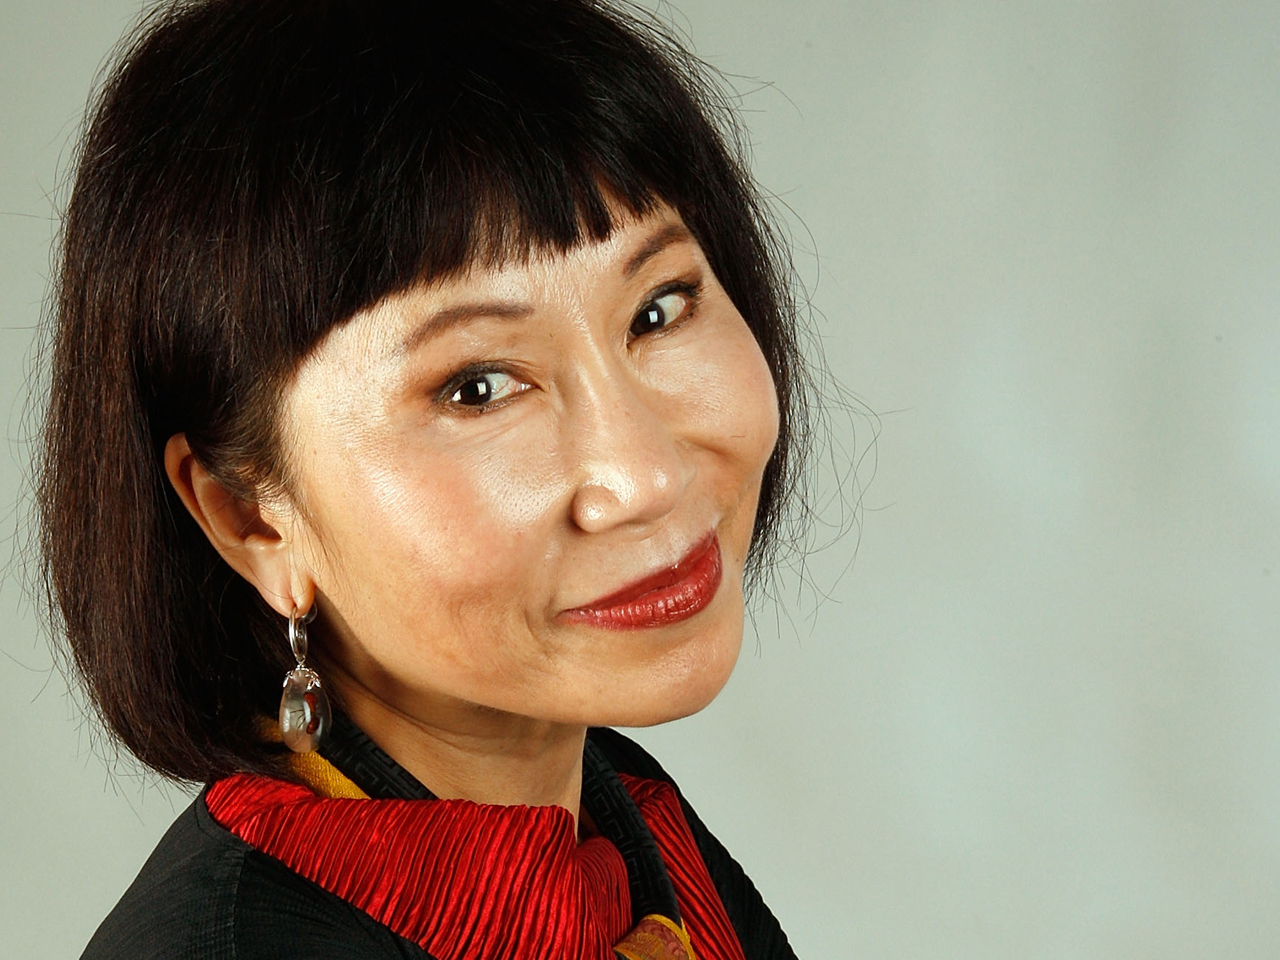 amy tan Amy tan's popular 1989 novel, 'the joy luck club,' is made up of a series of short stories that are interwoven to form a larger narrative 'a pair.